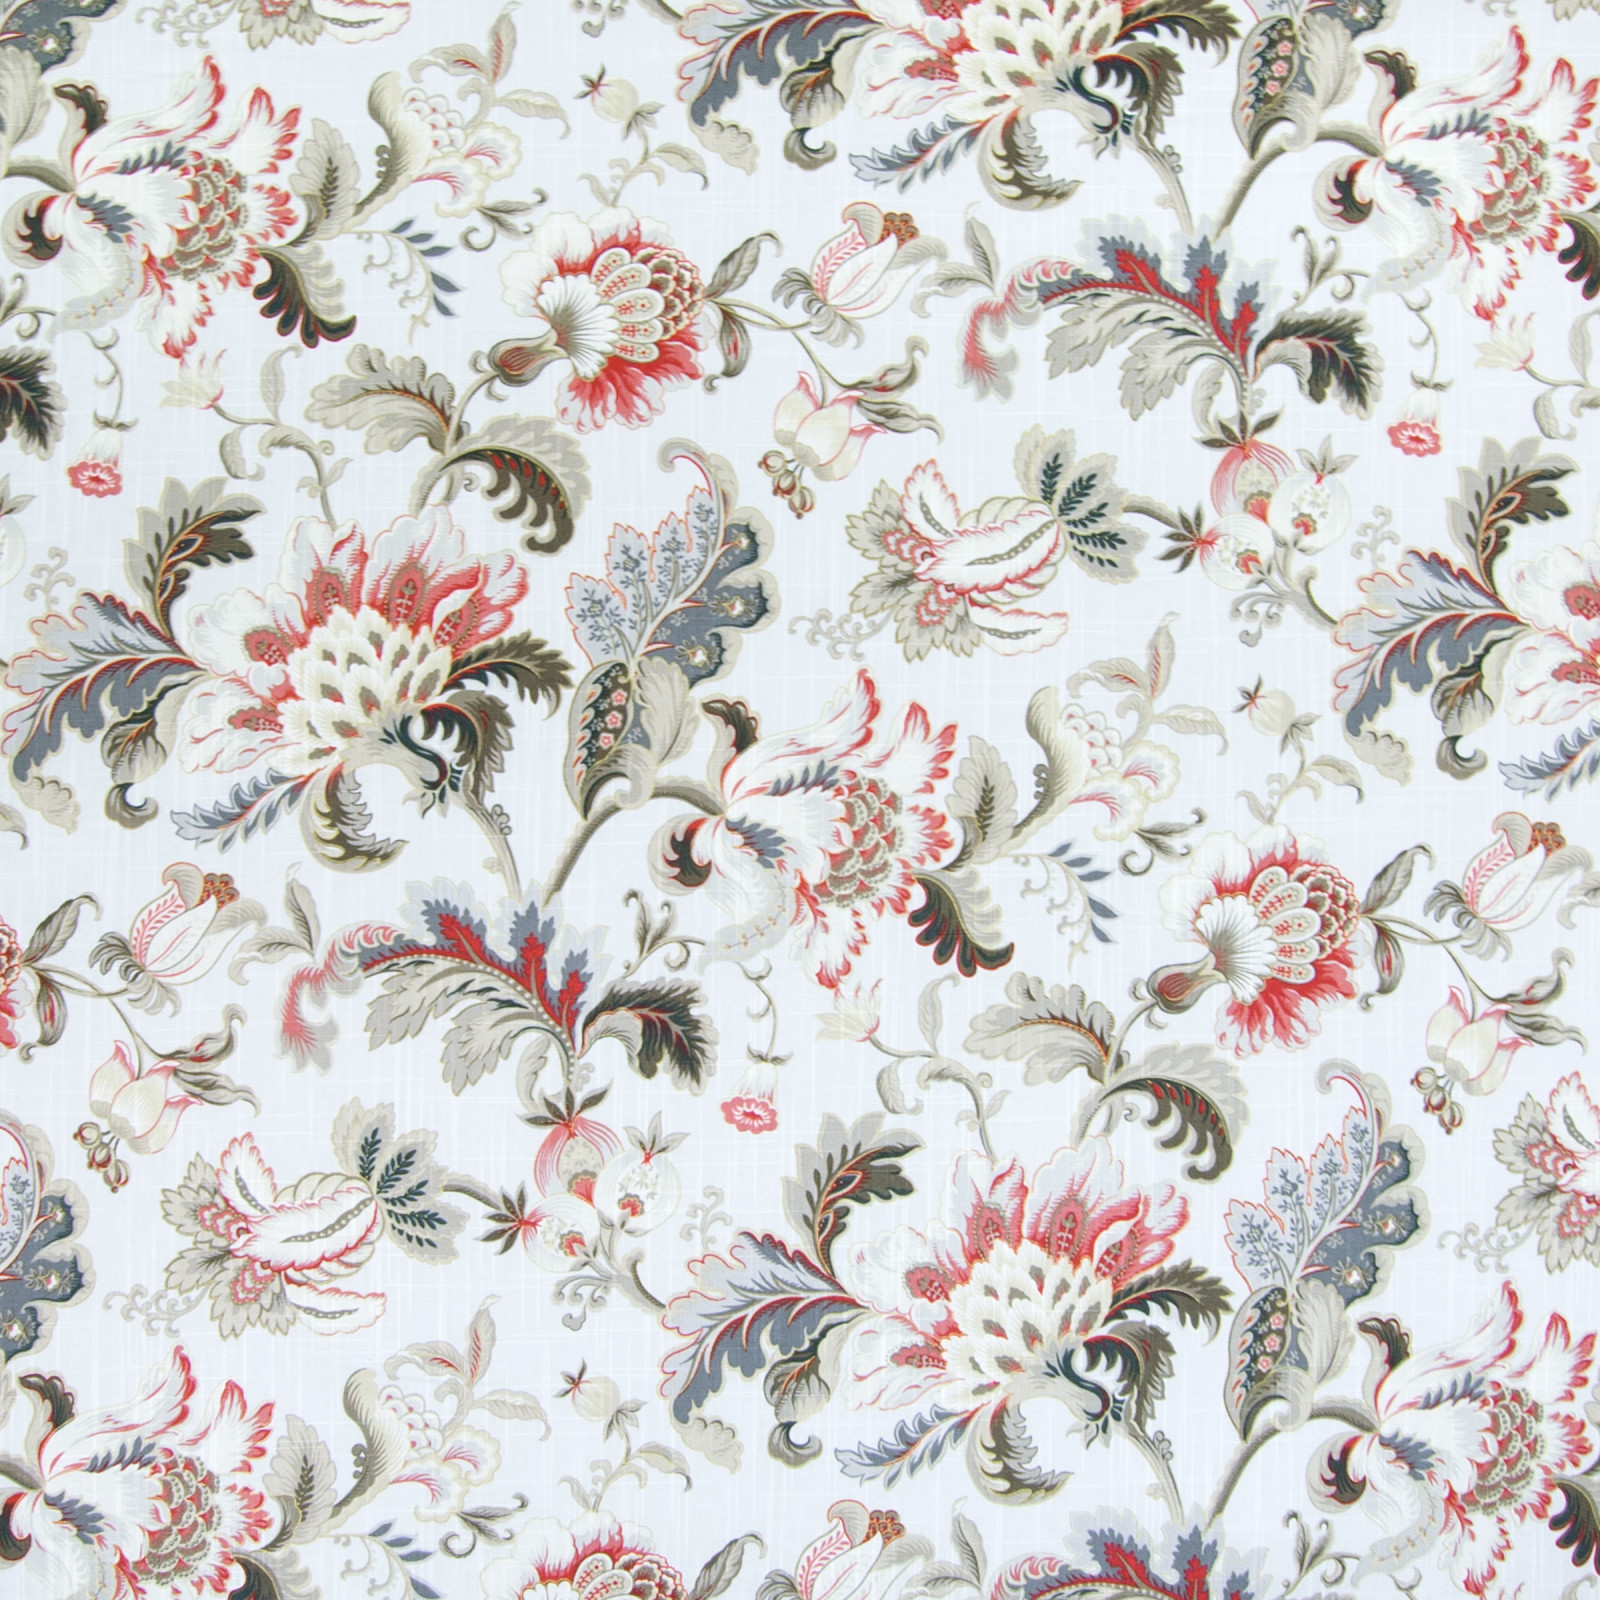 Moonbeam Red Floral Prints Upholstery Fabric